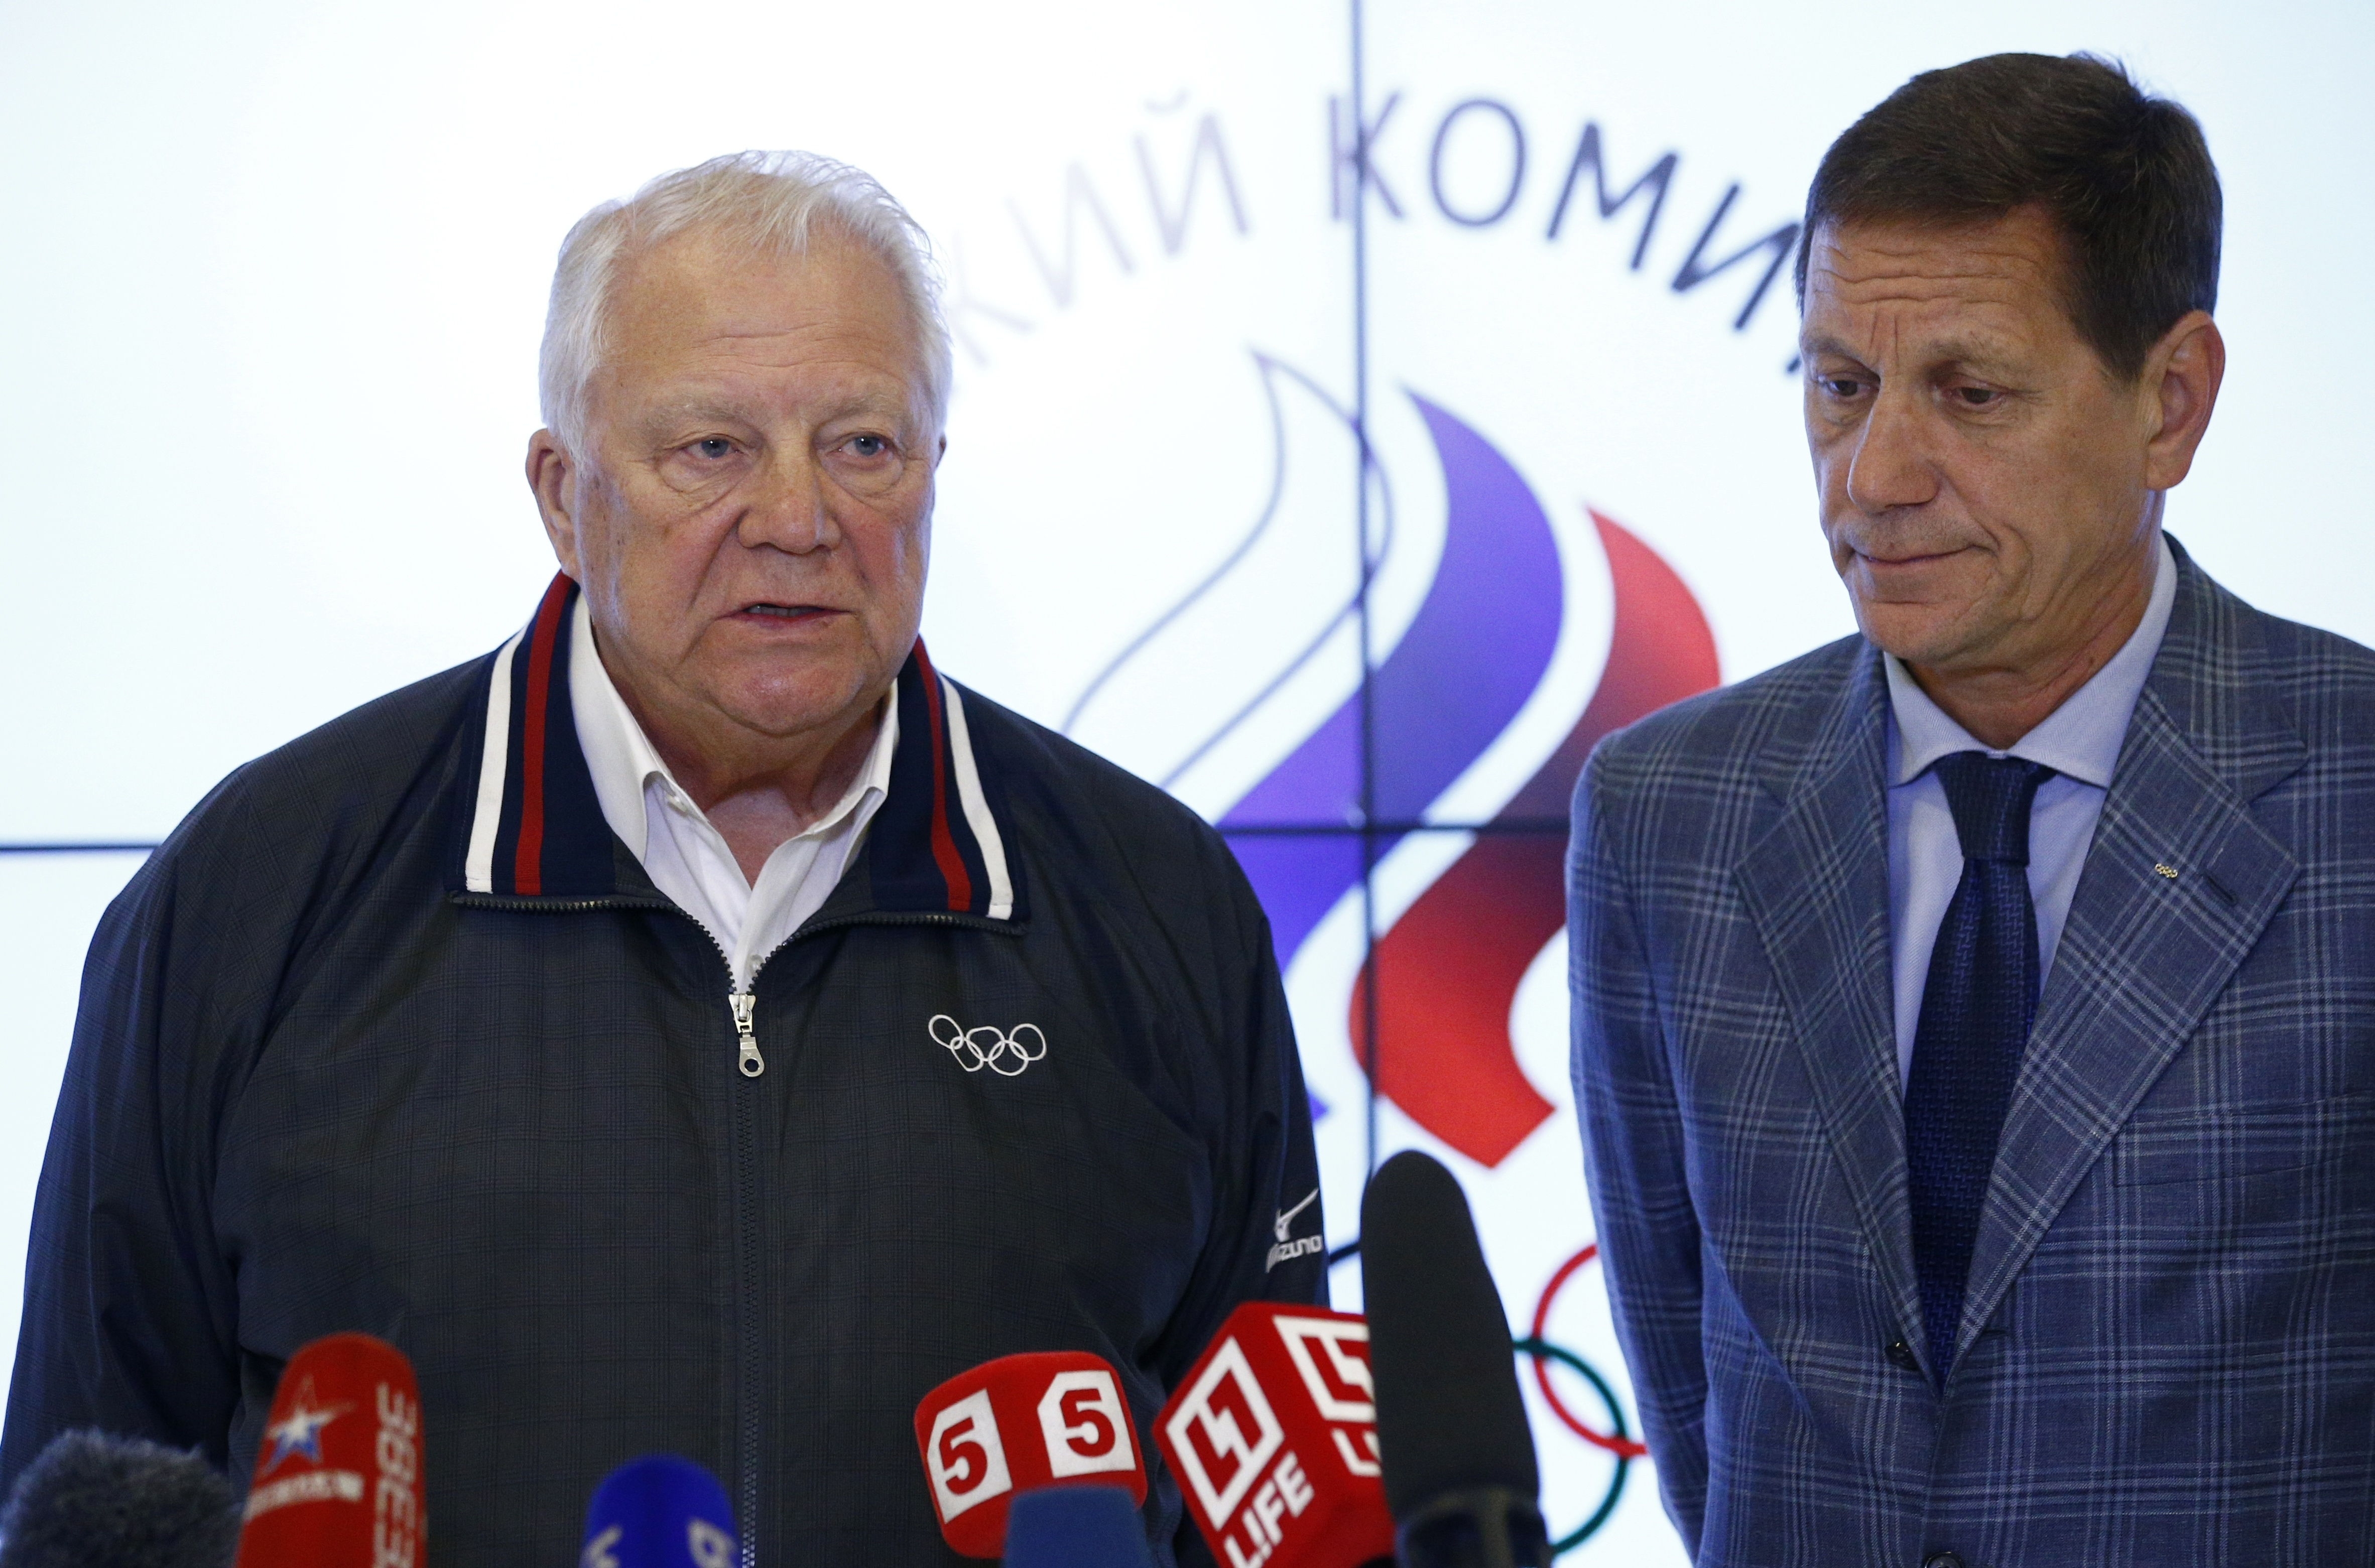 Vitaly Smirnov, an honorary member of the International Olympic Committee member and a veteran of Russian and Soviet sports administration, speaks at a news conference, with Russia's Olympic Committee President Alexander Zhukov at right, in Moscow, Russia